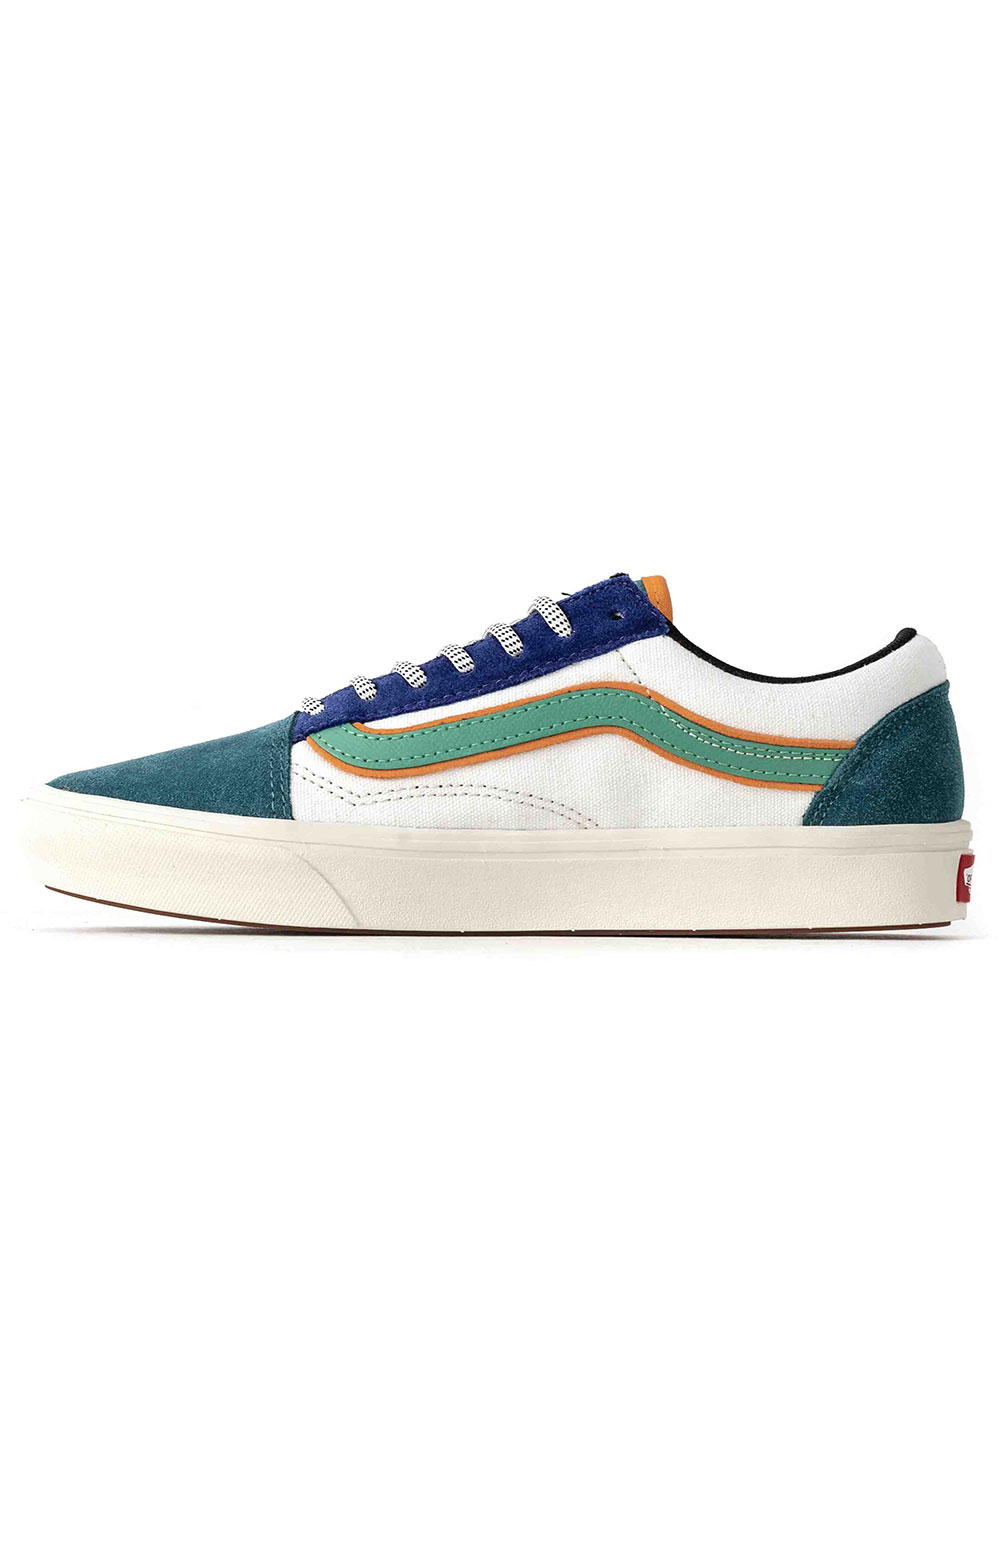 (WMAWWF) Bugs Old Skool ComfyCush Shoe - Multi 4